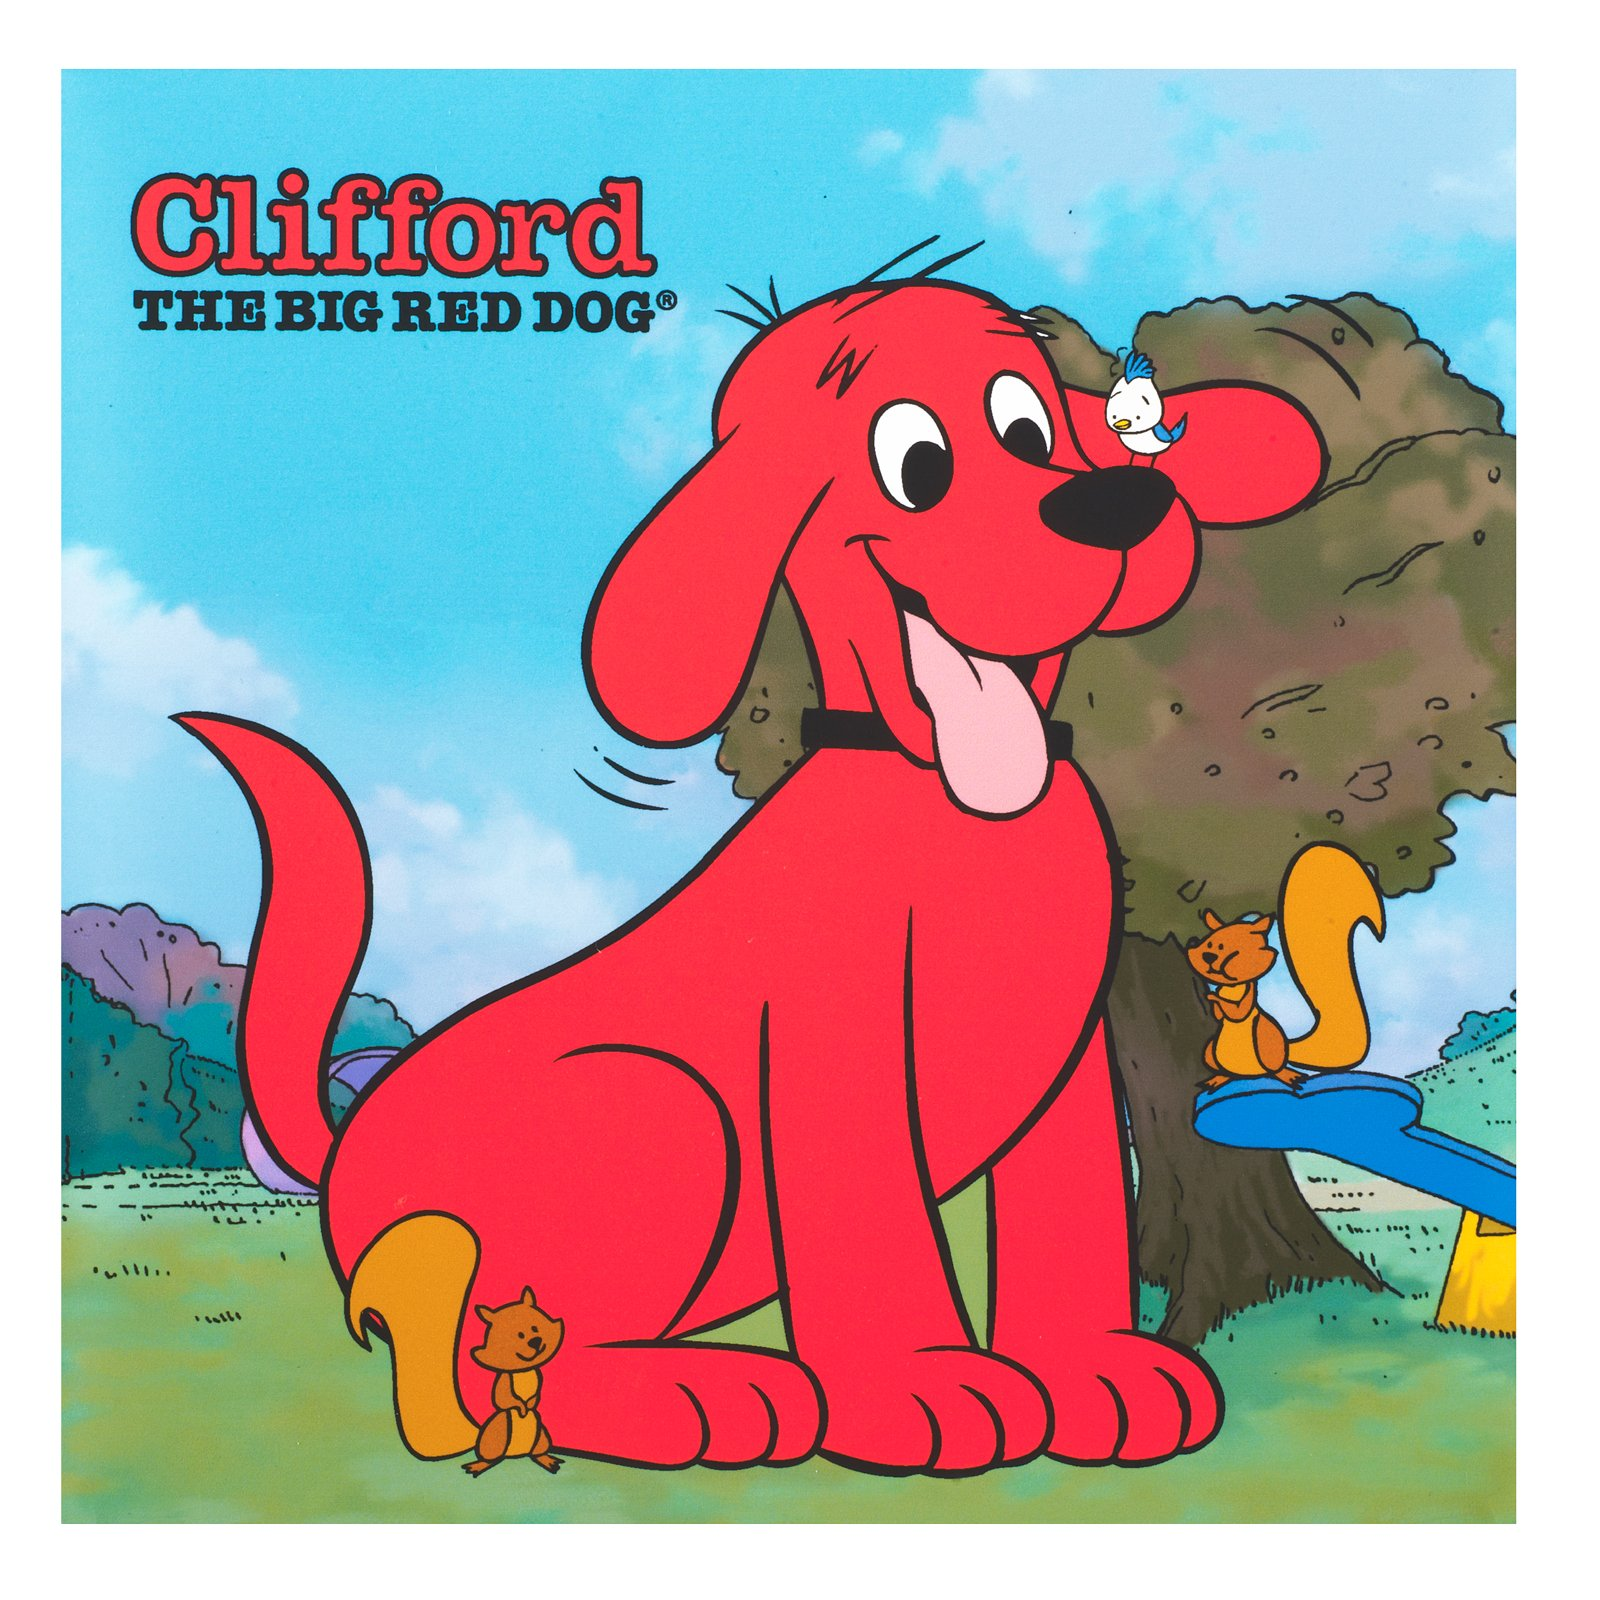 BirthdayExpress.com Brings Clifford the Big Red Dog(R) to the Party